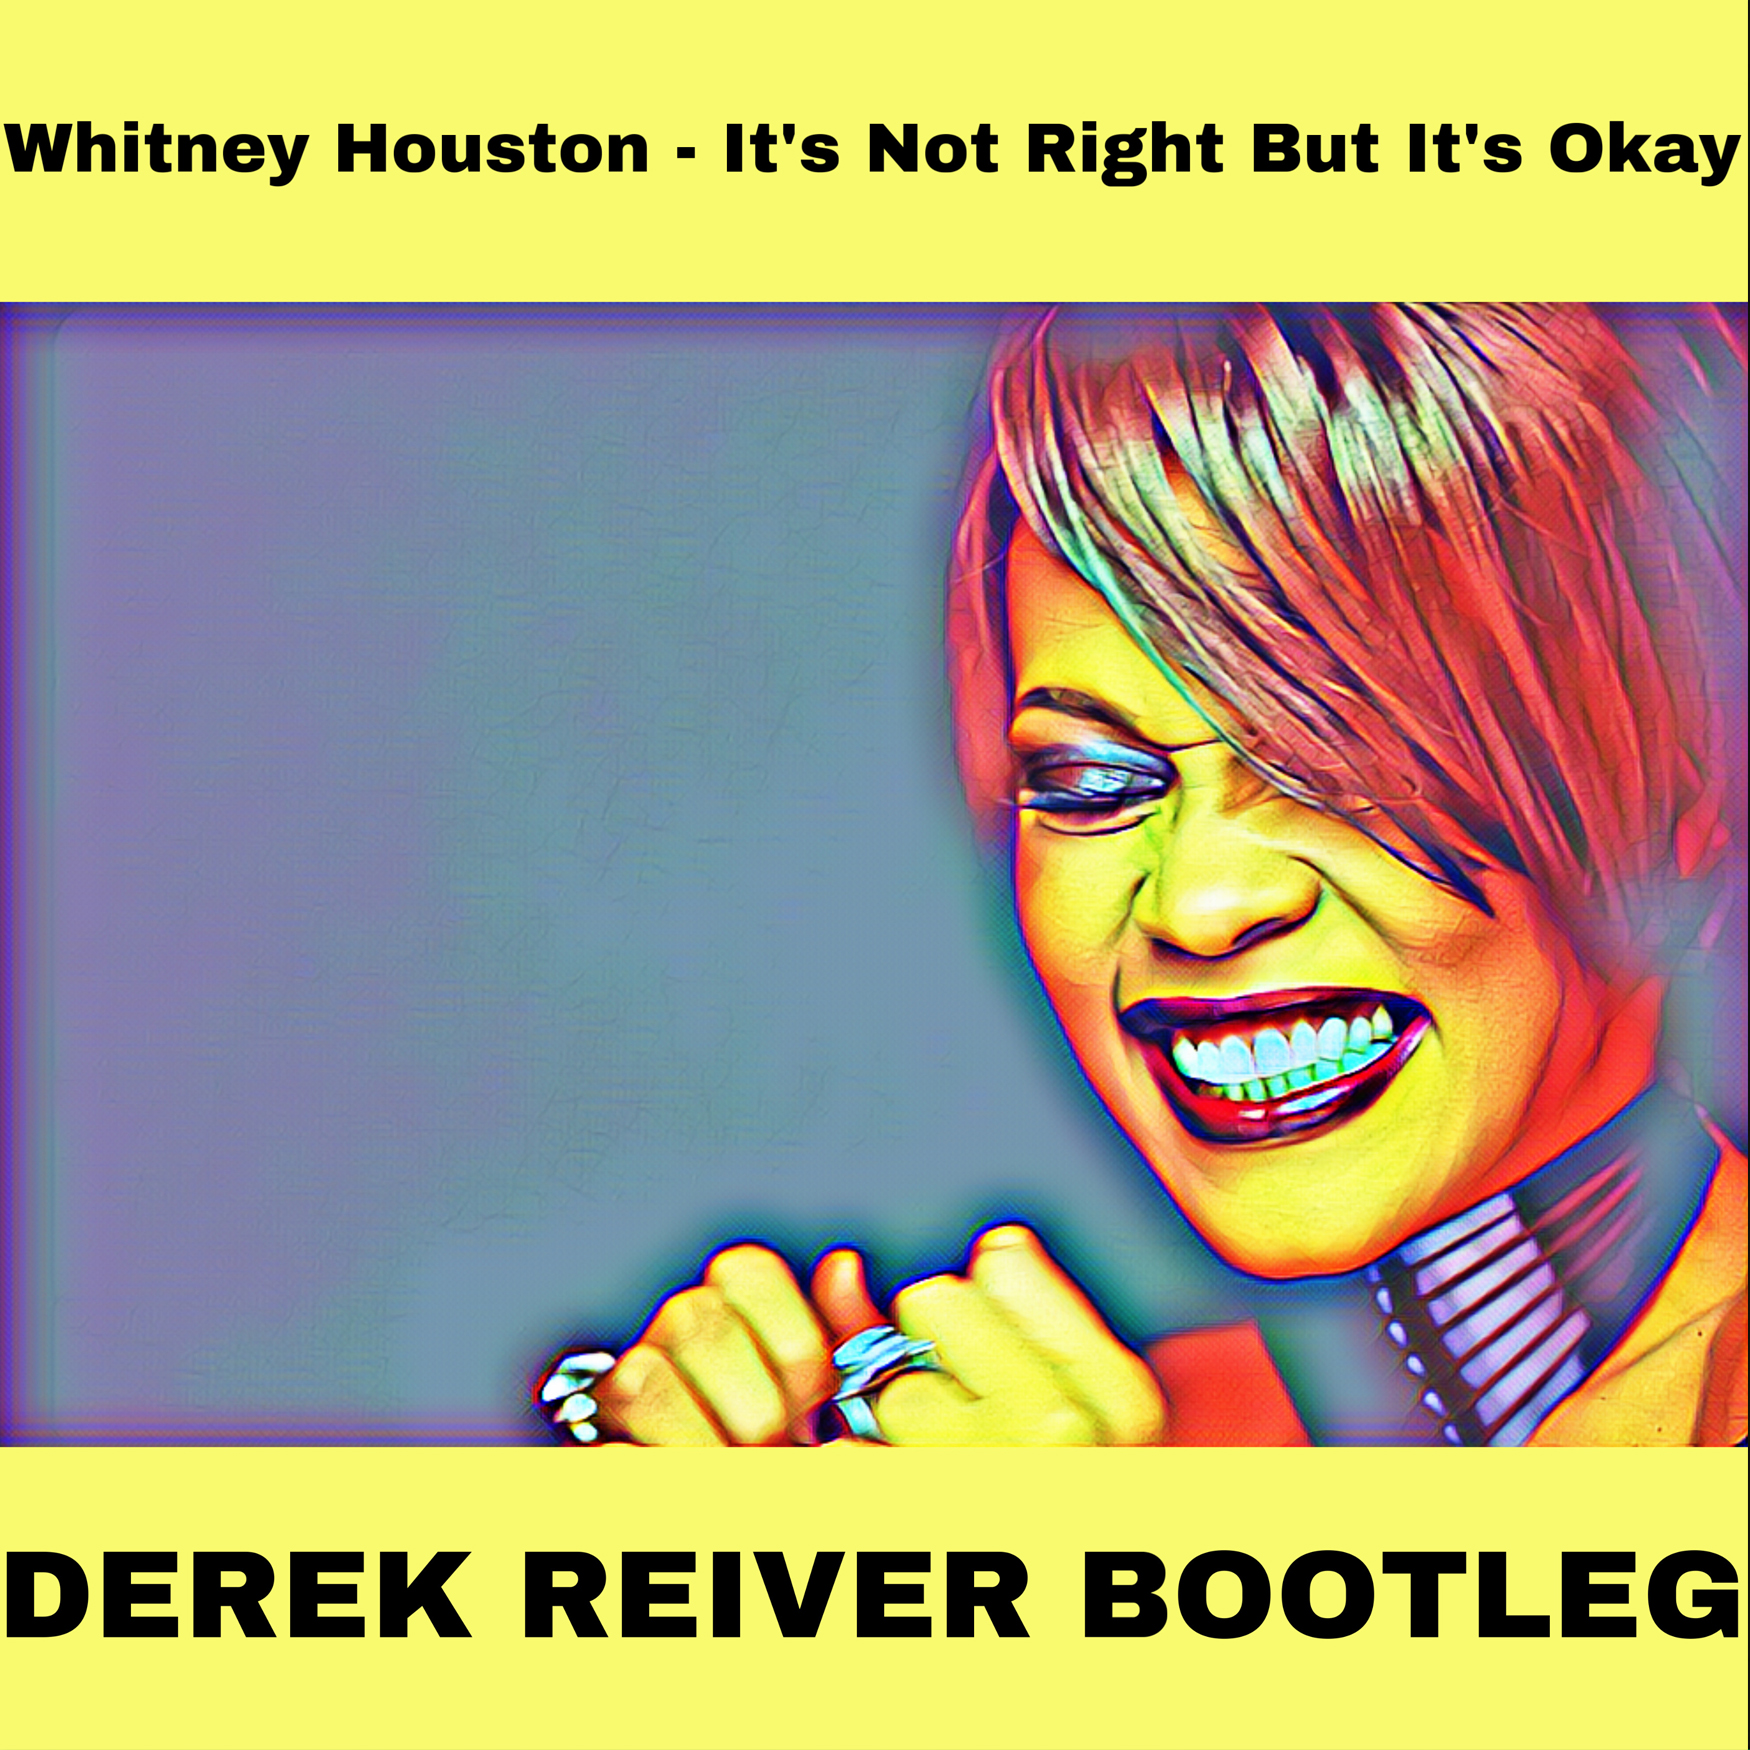 Whitney Houston - It's Not Right But It's Okay (DEREK REIVER Bootleg)